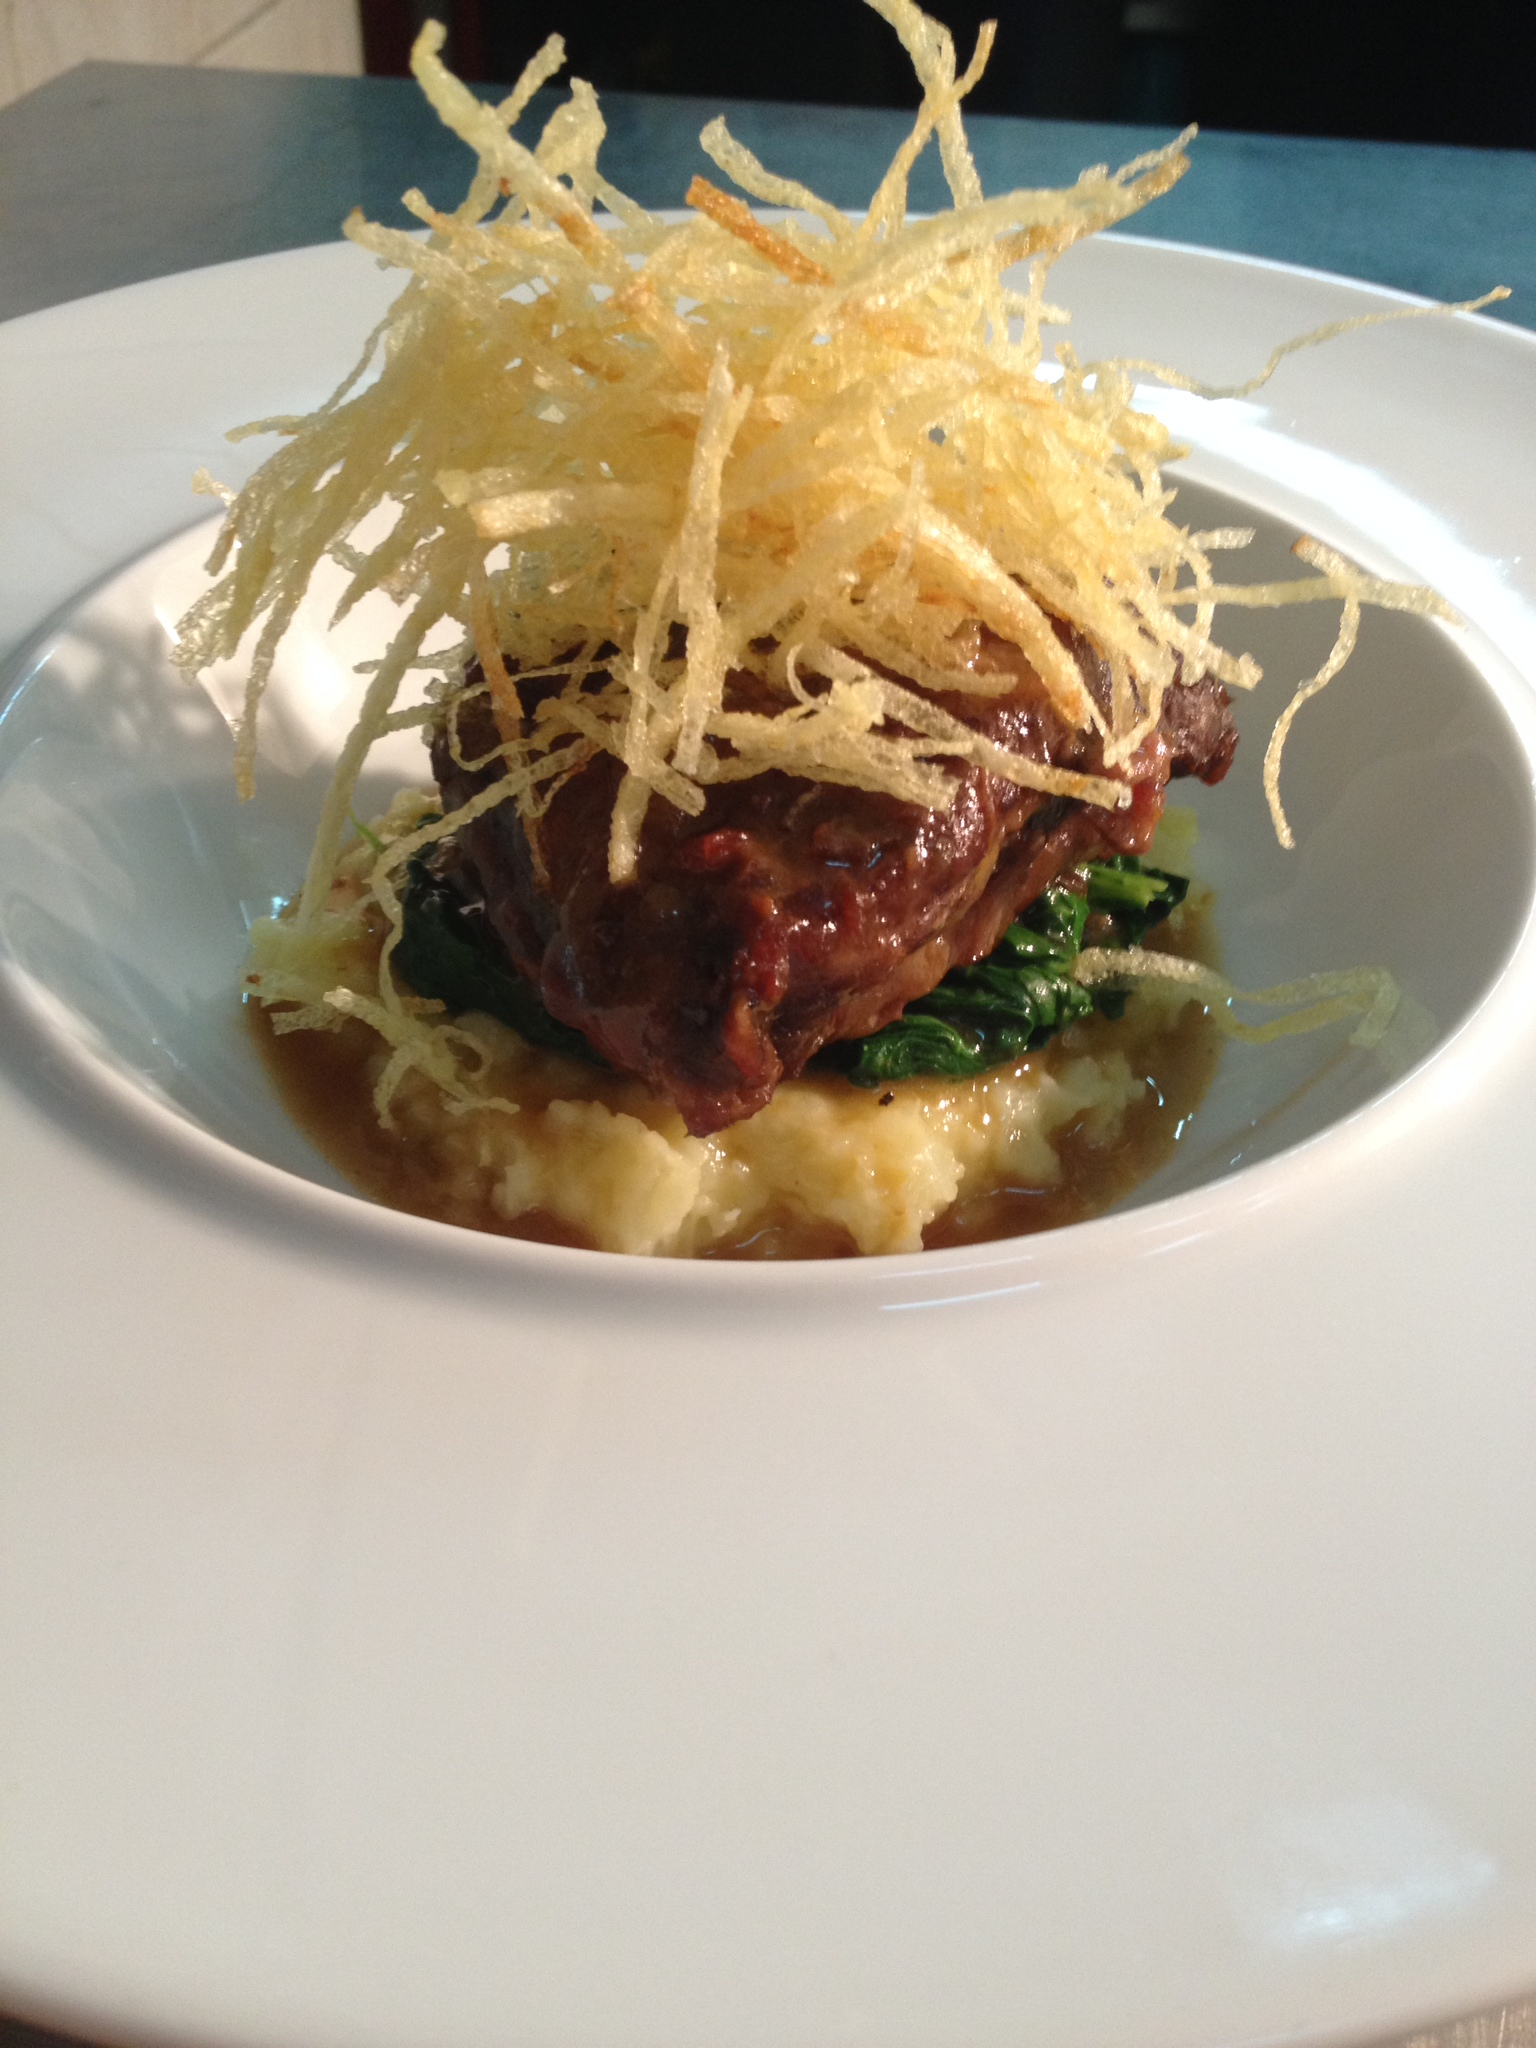 Braised beef cheeks with red wine, cardamon and lemongrass